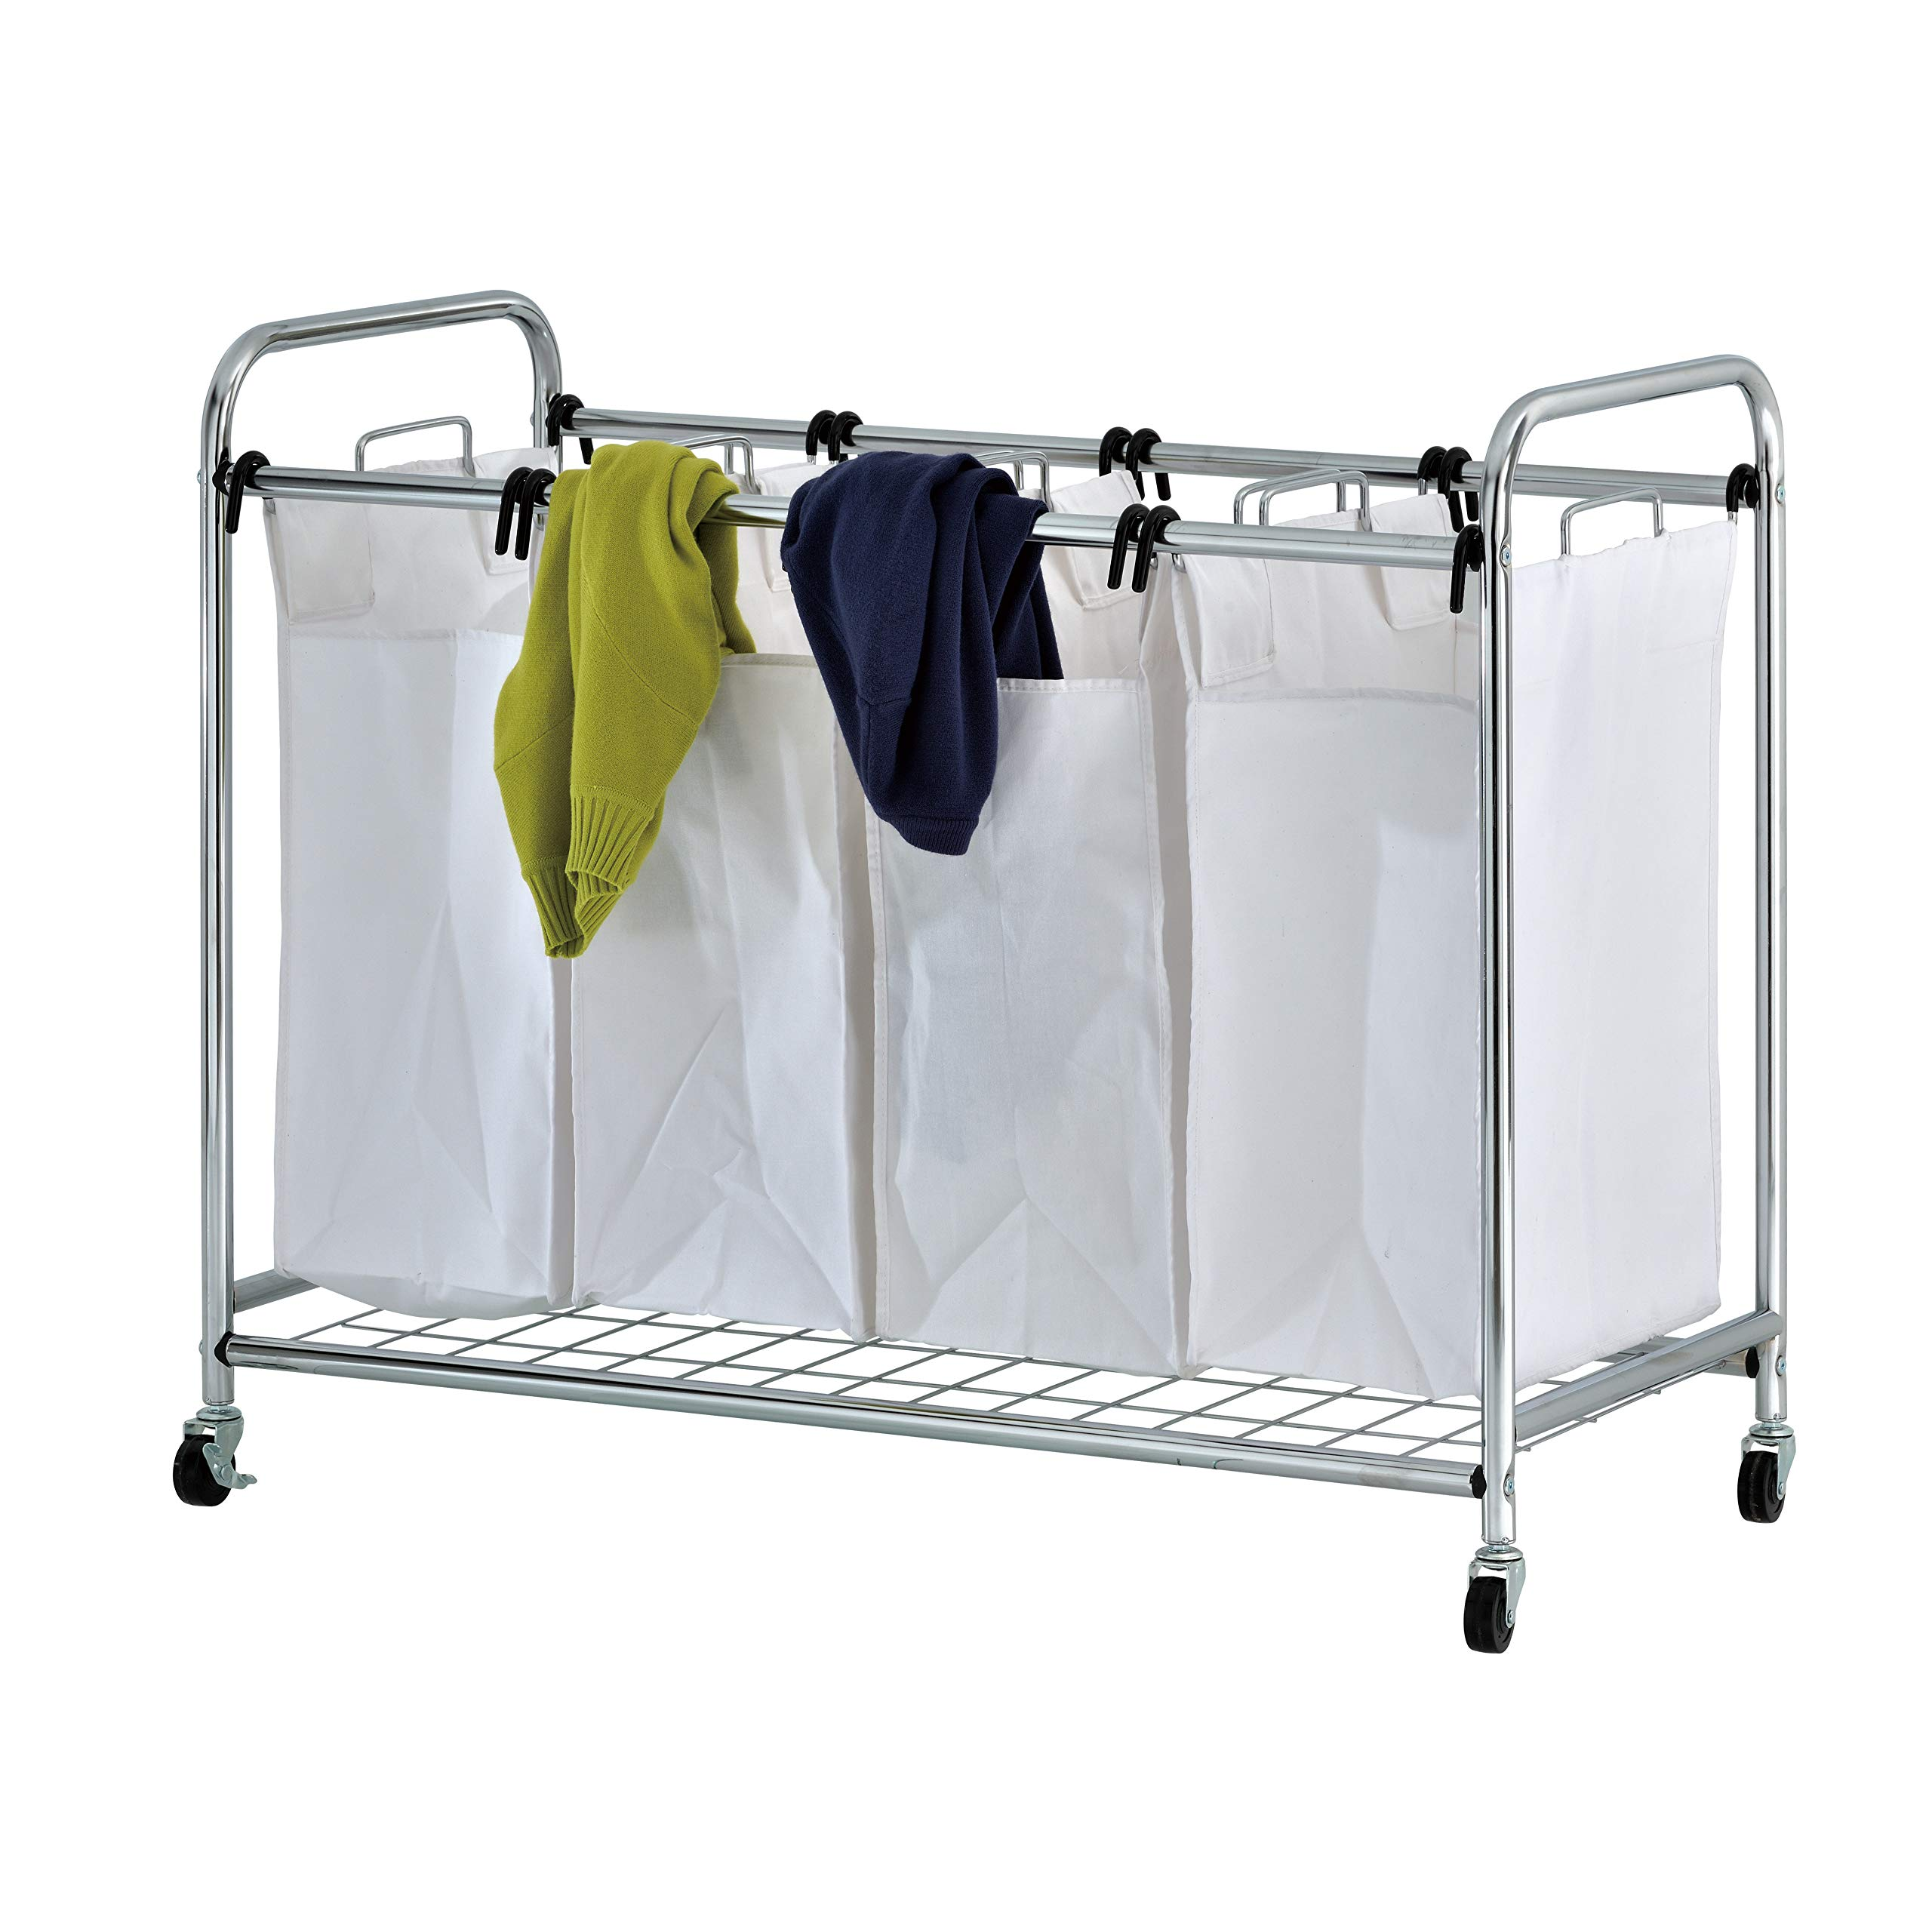 ikloo Portable 4-Bag Heavy Duty Laundry Sorter Cart with Reusable Sorting Bins, Sturdy Tensile Laundry Bin Frame, Portable Commercial Grade 4-Caster Wheels with Anti-Rust Chrome Coated Steel